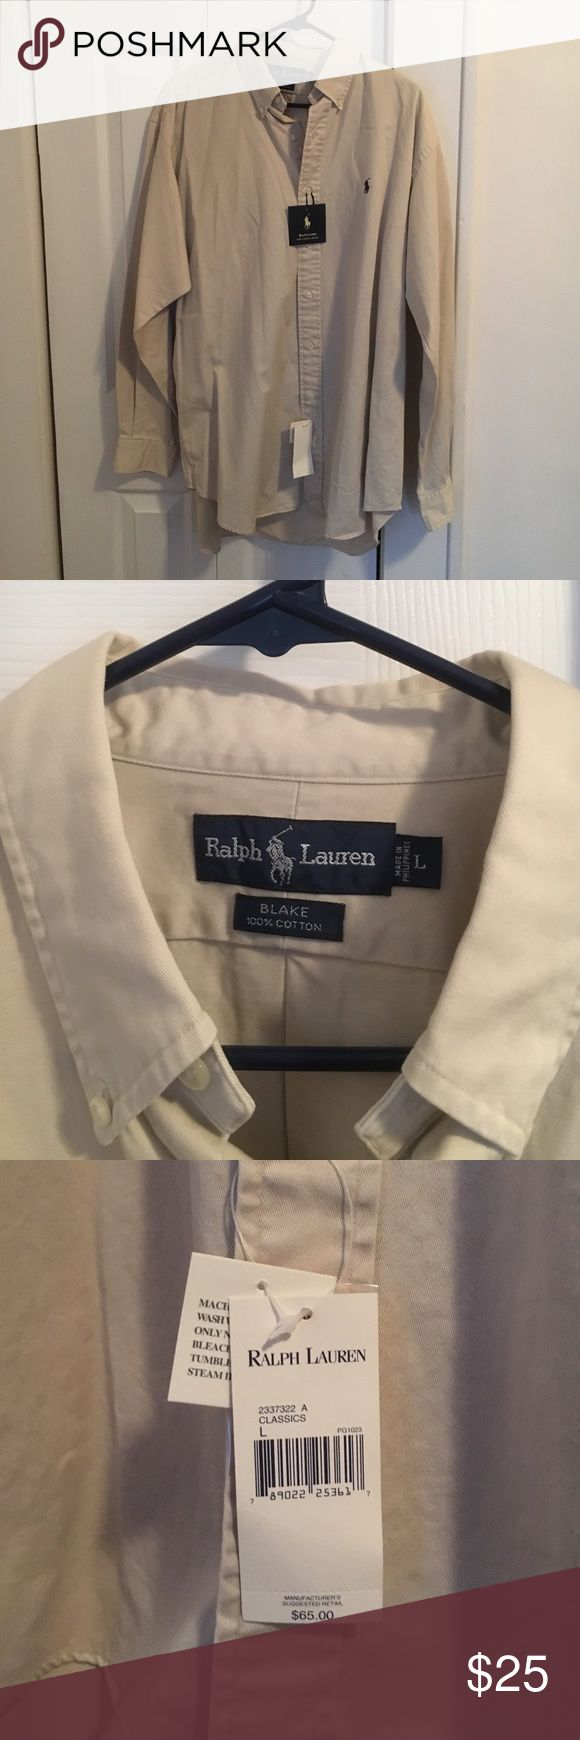 Large Men's Chino Shirt by Ralph Lauren This khaki colored shirt from Ralph Lauren is a size large button down. It is never been worn, in excellent condition, and still has the tags on it. Ralph Lauren Shirts Casual Button Down Shirts